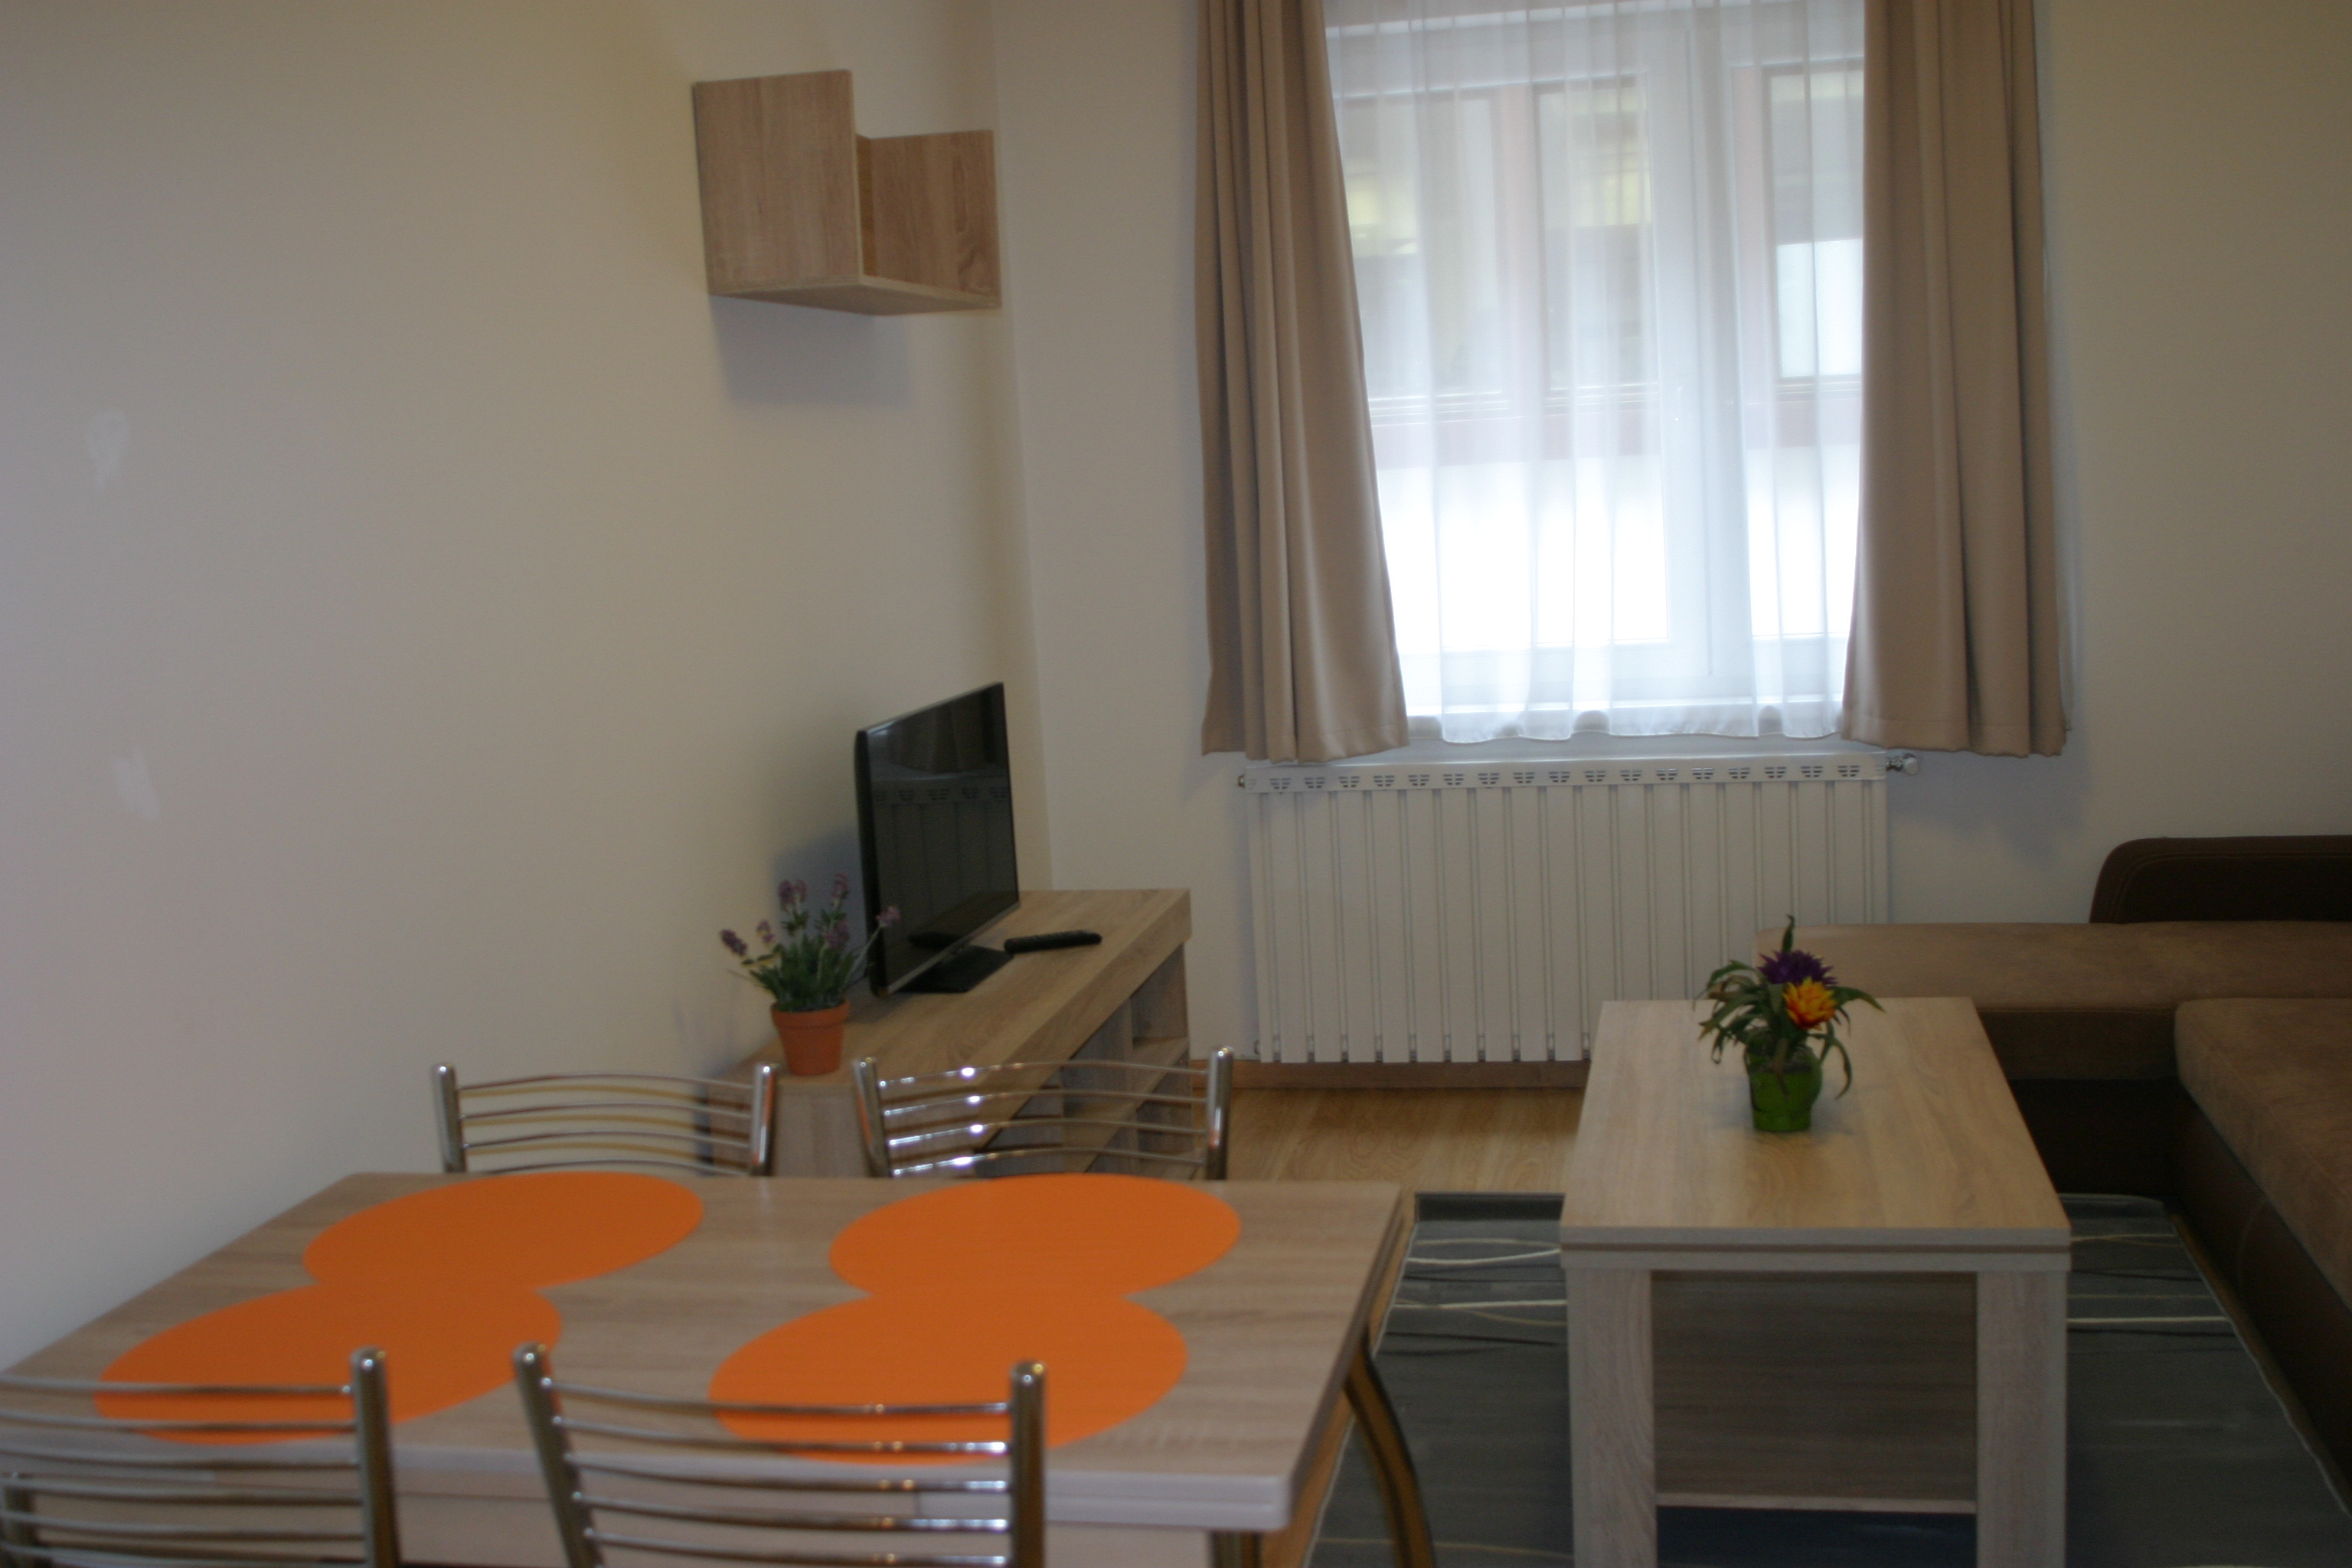 VIII. Kisfaludy Str. 18-20. Apartment 611